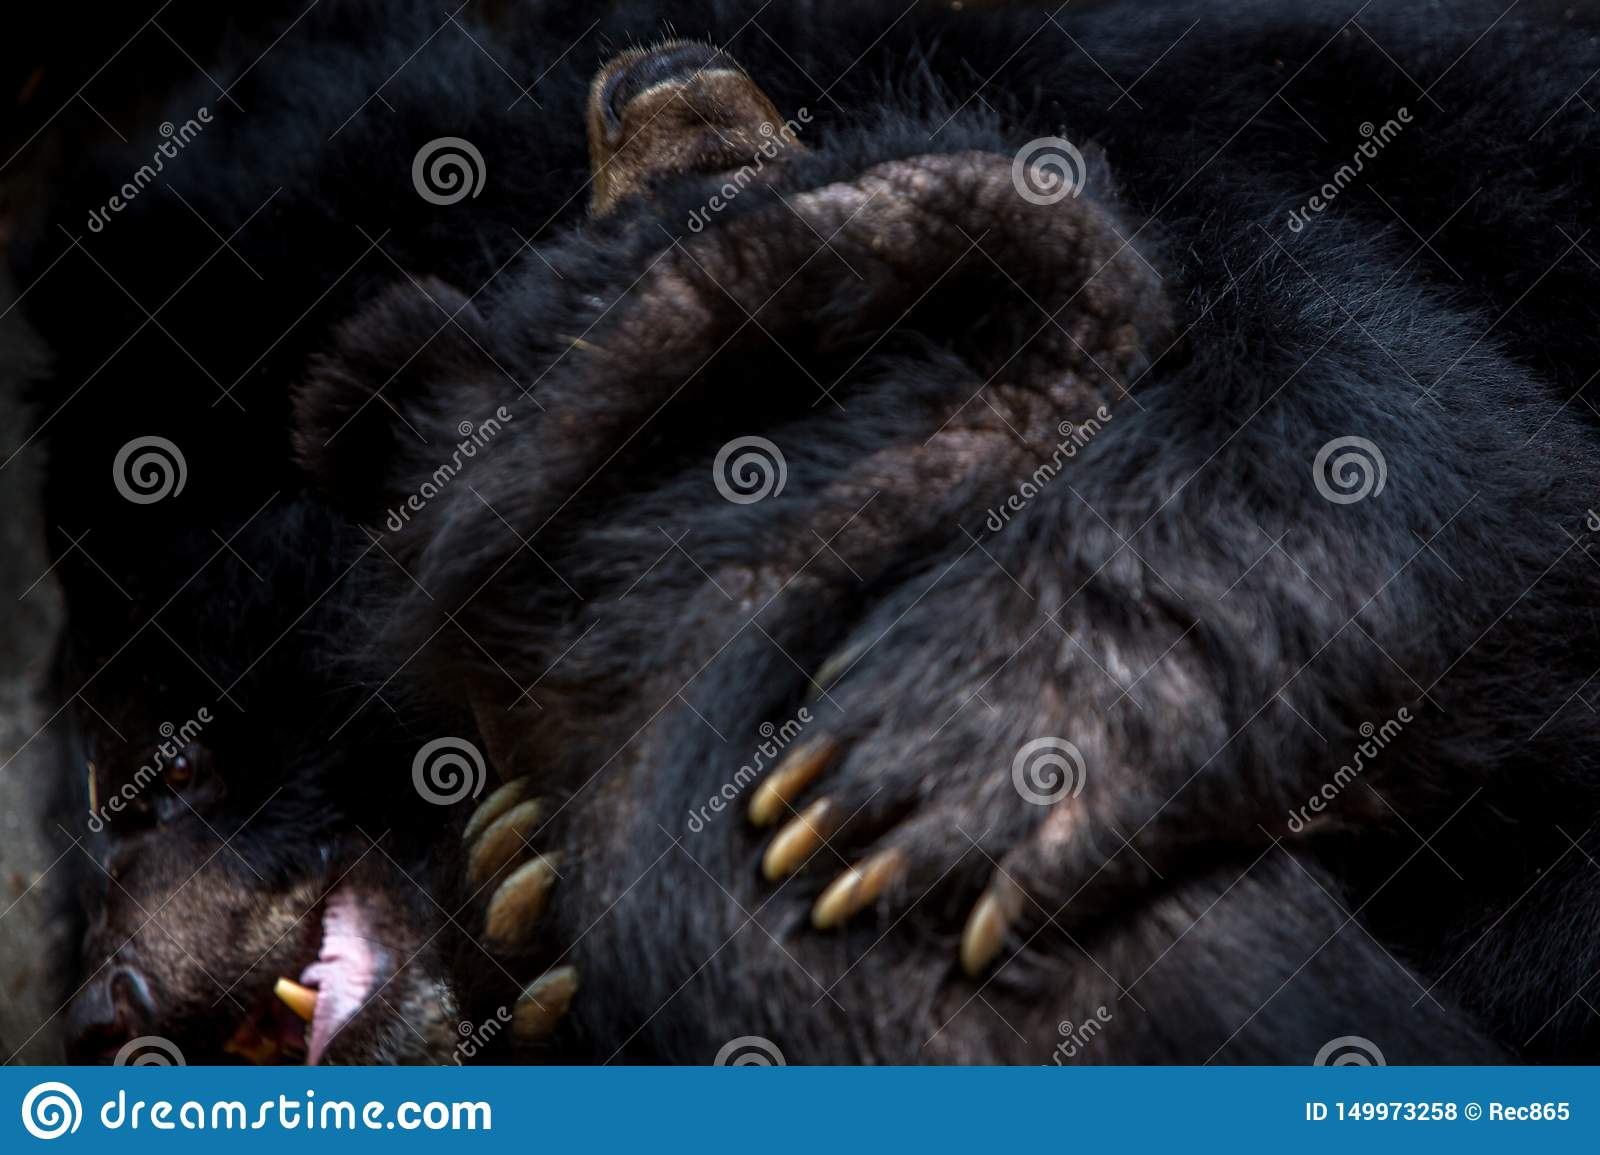 Closeup to the face of two adults Formosa Black Bears figthing with the claws